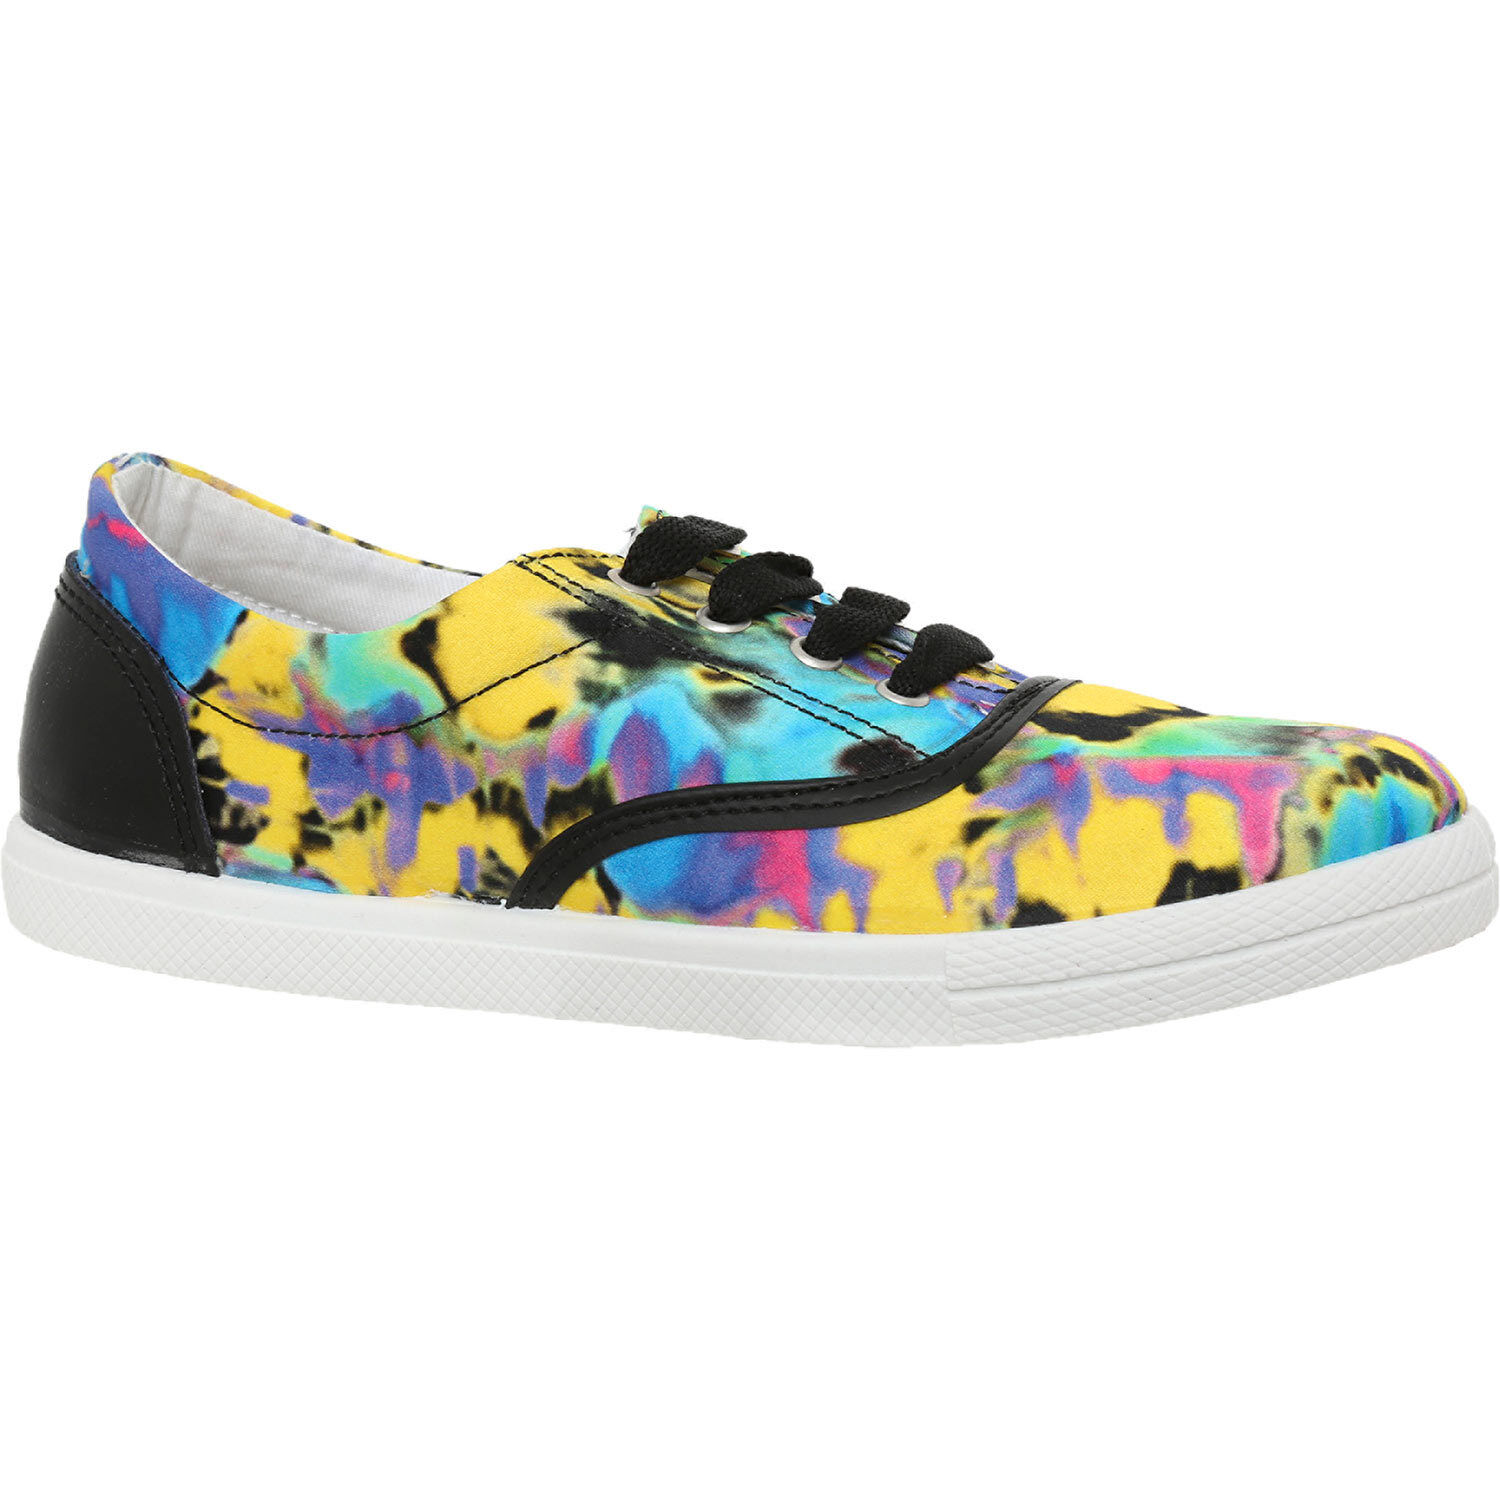 LOVE MOSCHINO Multicoloured Patterned Sneakers size UK 5 - New